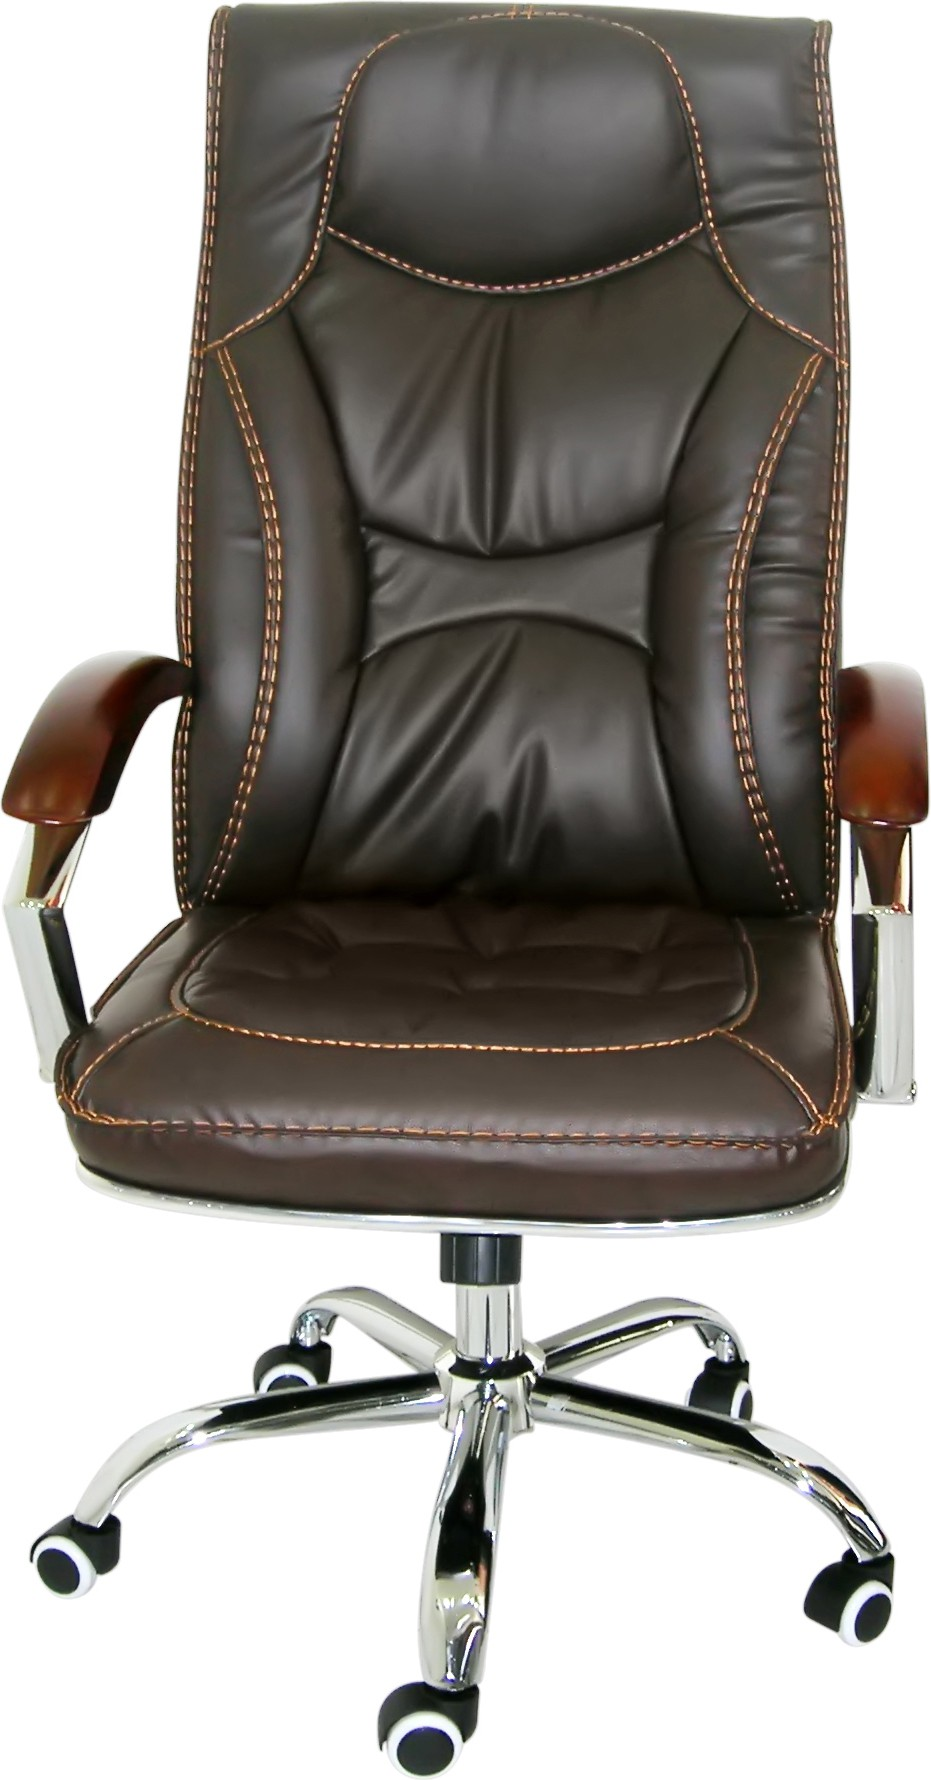 Comfort-line Metal Office Chair